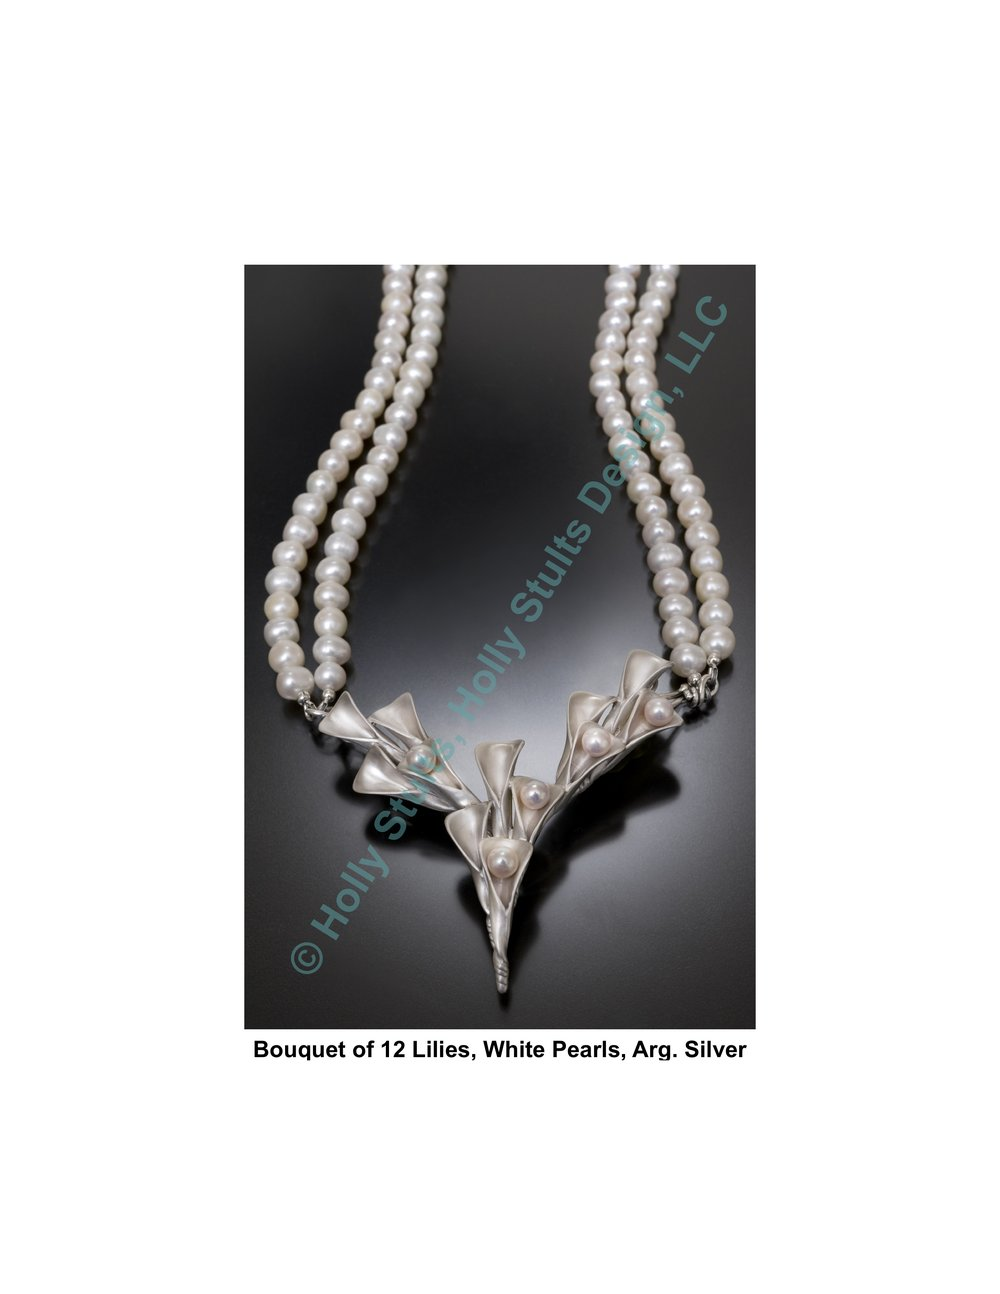 Bouquet of 12 Lilies, White Pearls, Arg. Silver.jpg